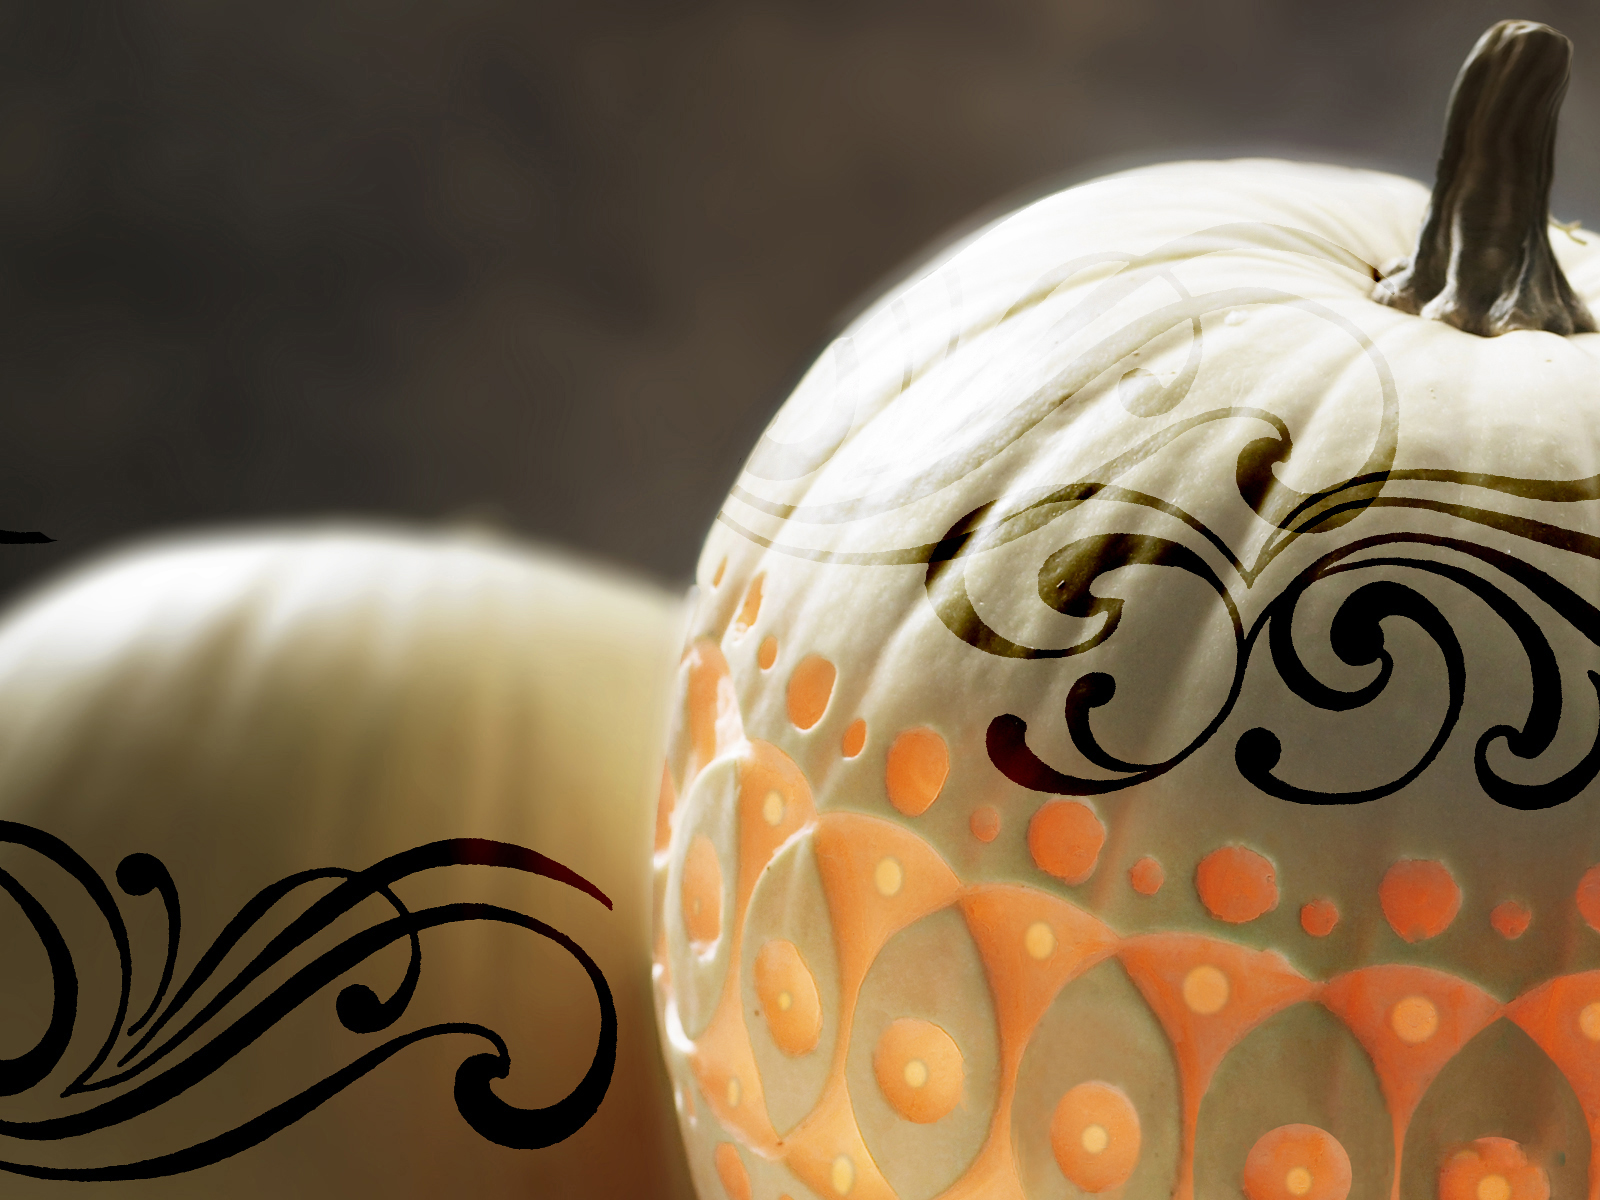 1600x1200 tattoo on pumpkins desktop pc and mac wallpaper White pumpkin carving ideas